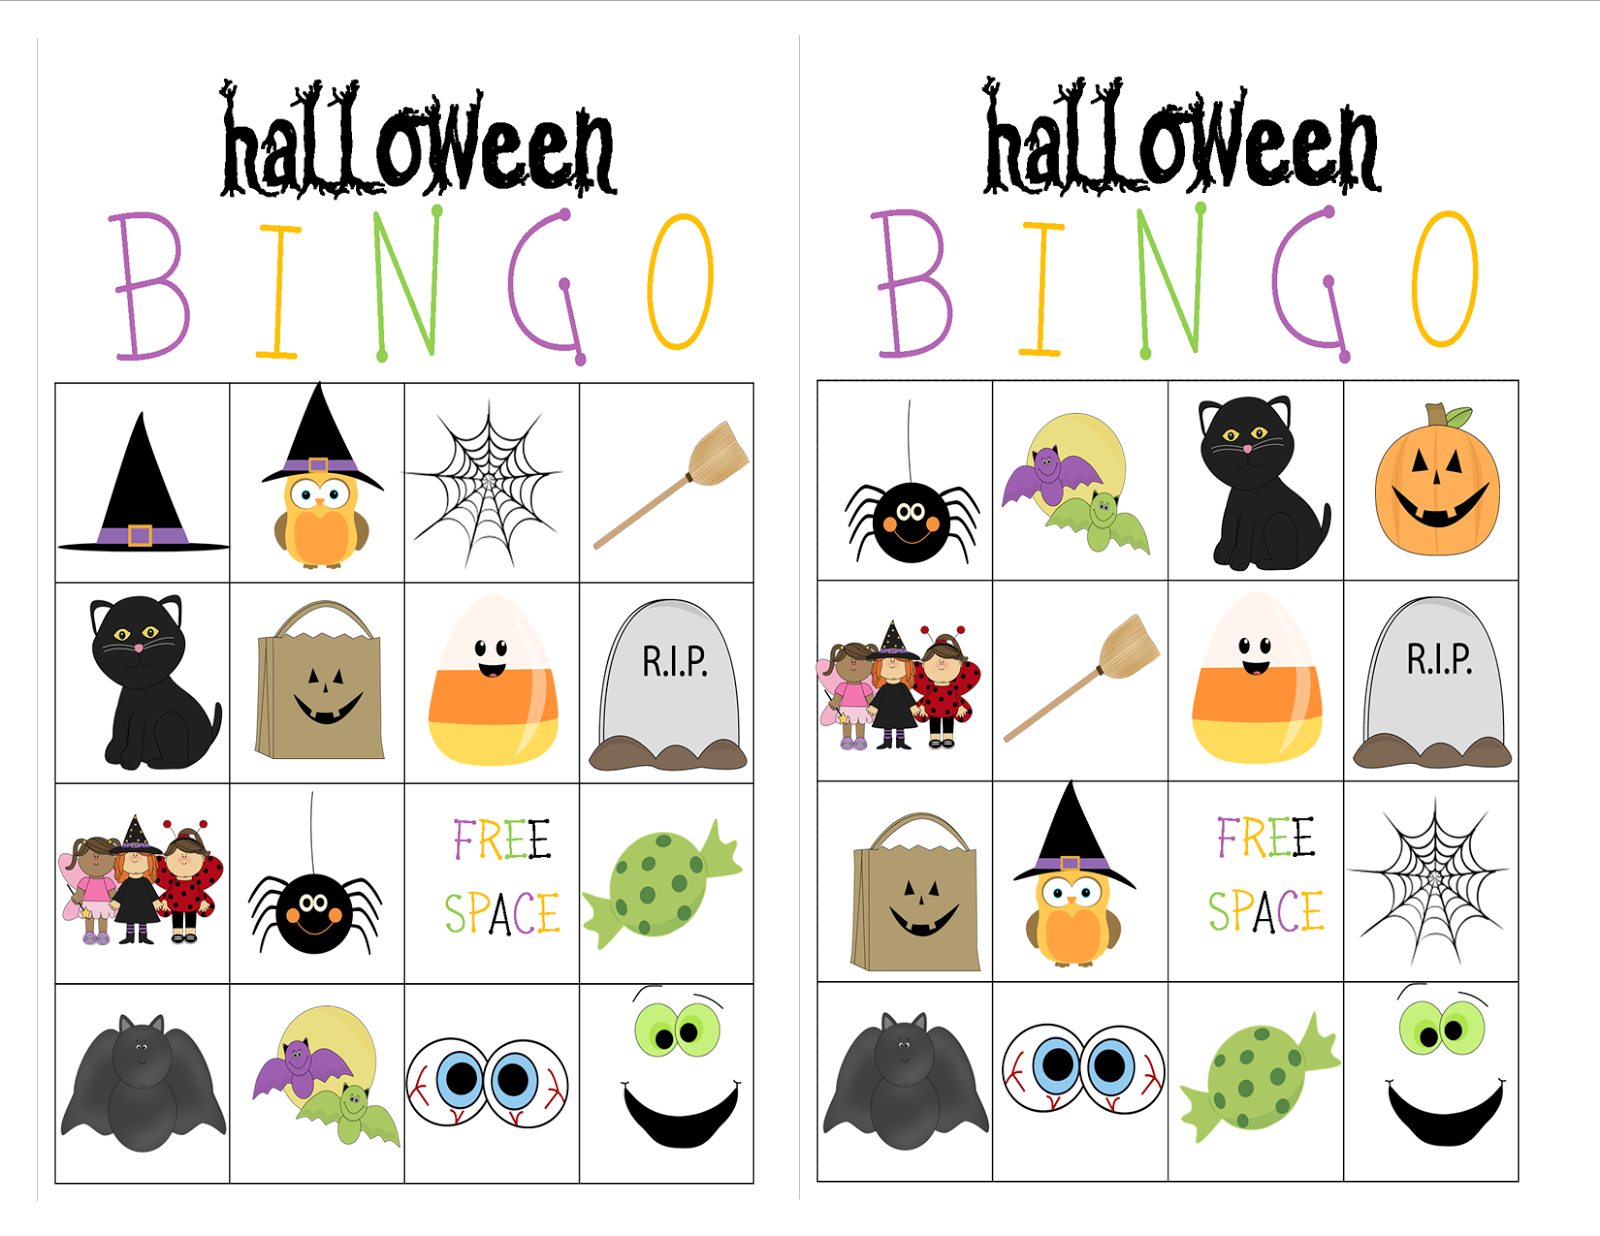 It's just an image of Ridiculous Printable Halloween Bingo Cards